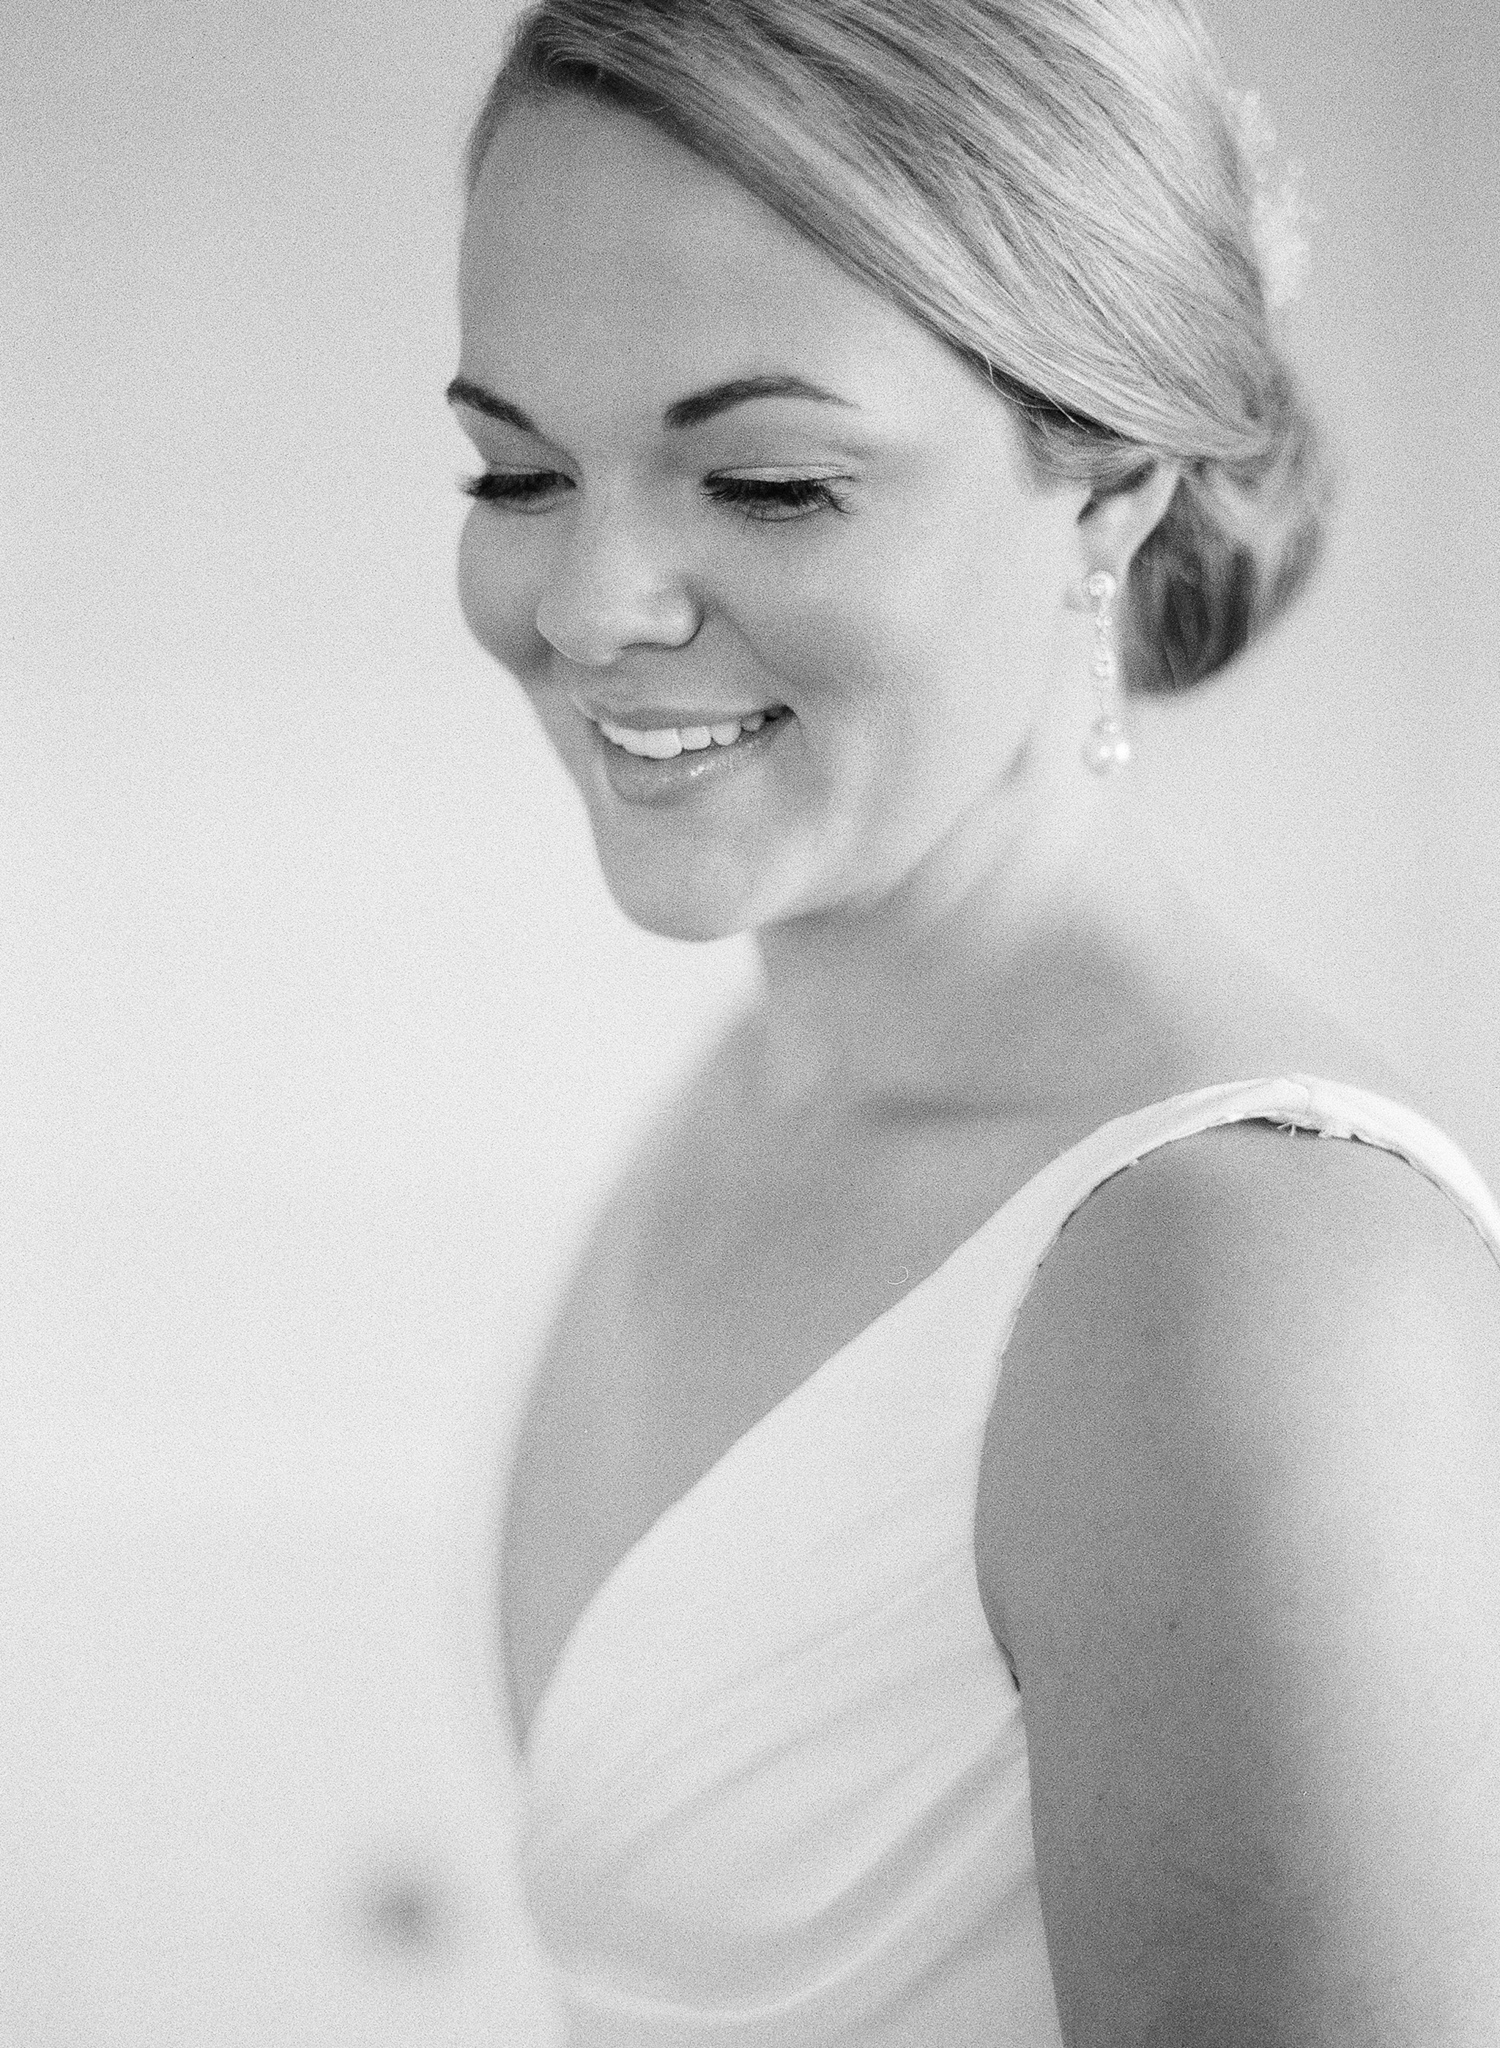 Bald Head Island Wedding Film Photographer 06.jpg